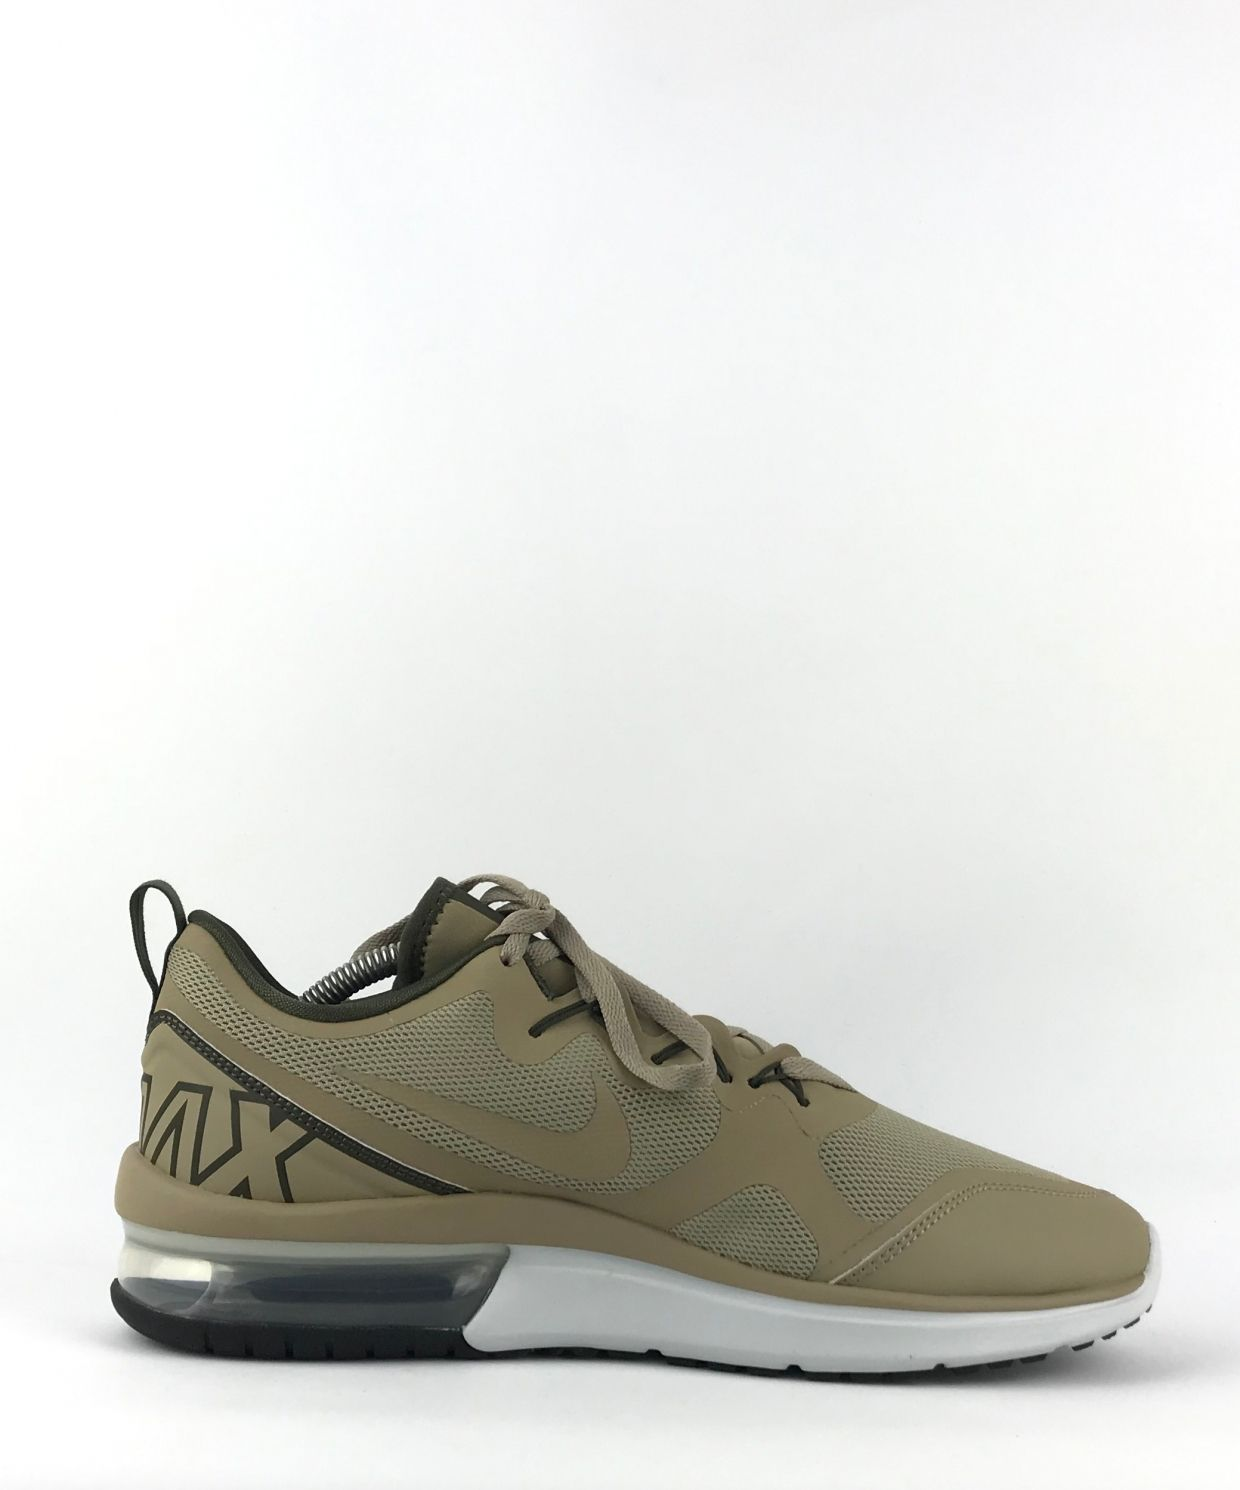 nike aire max fury